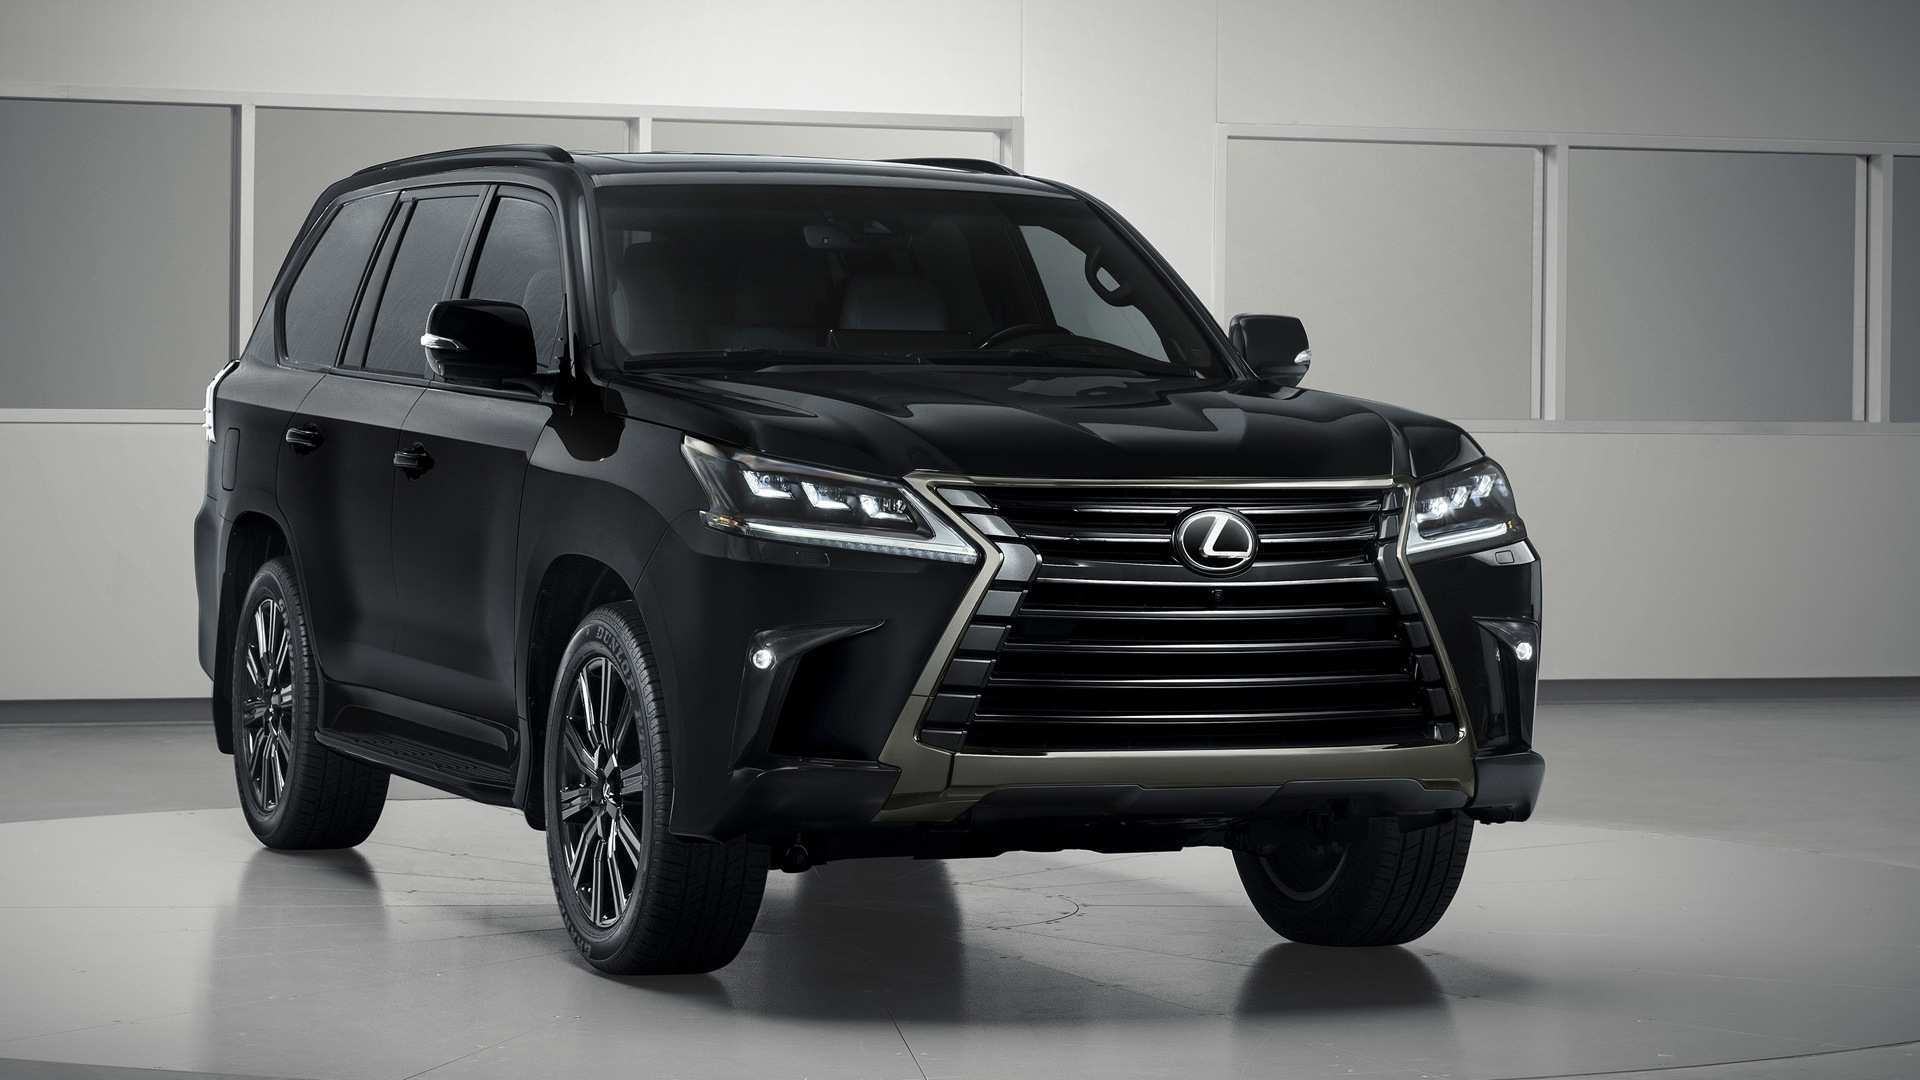 43 Gallery of 2019 Lexus Lx Price for 2019 Lexus Lx